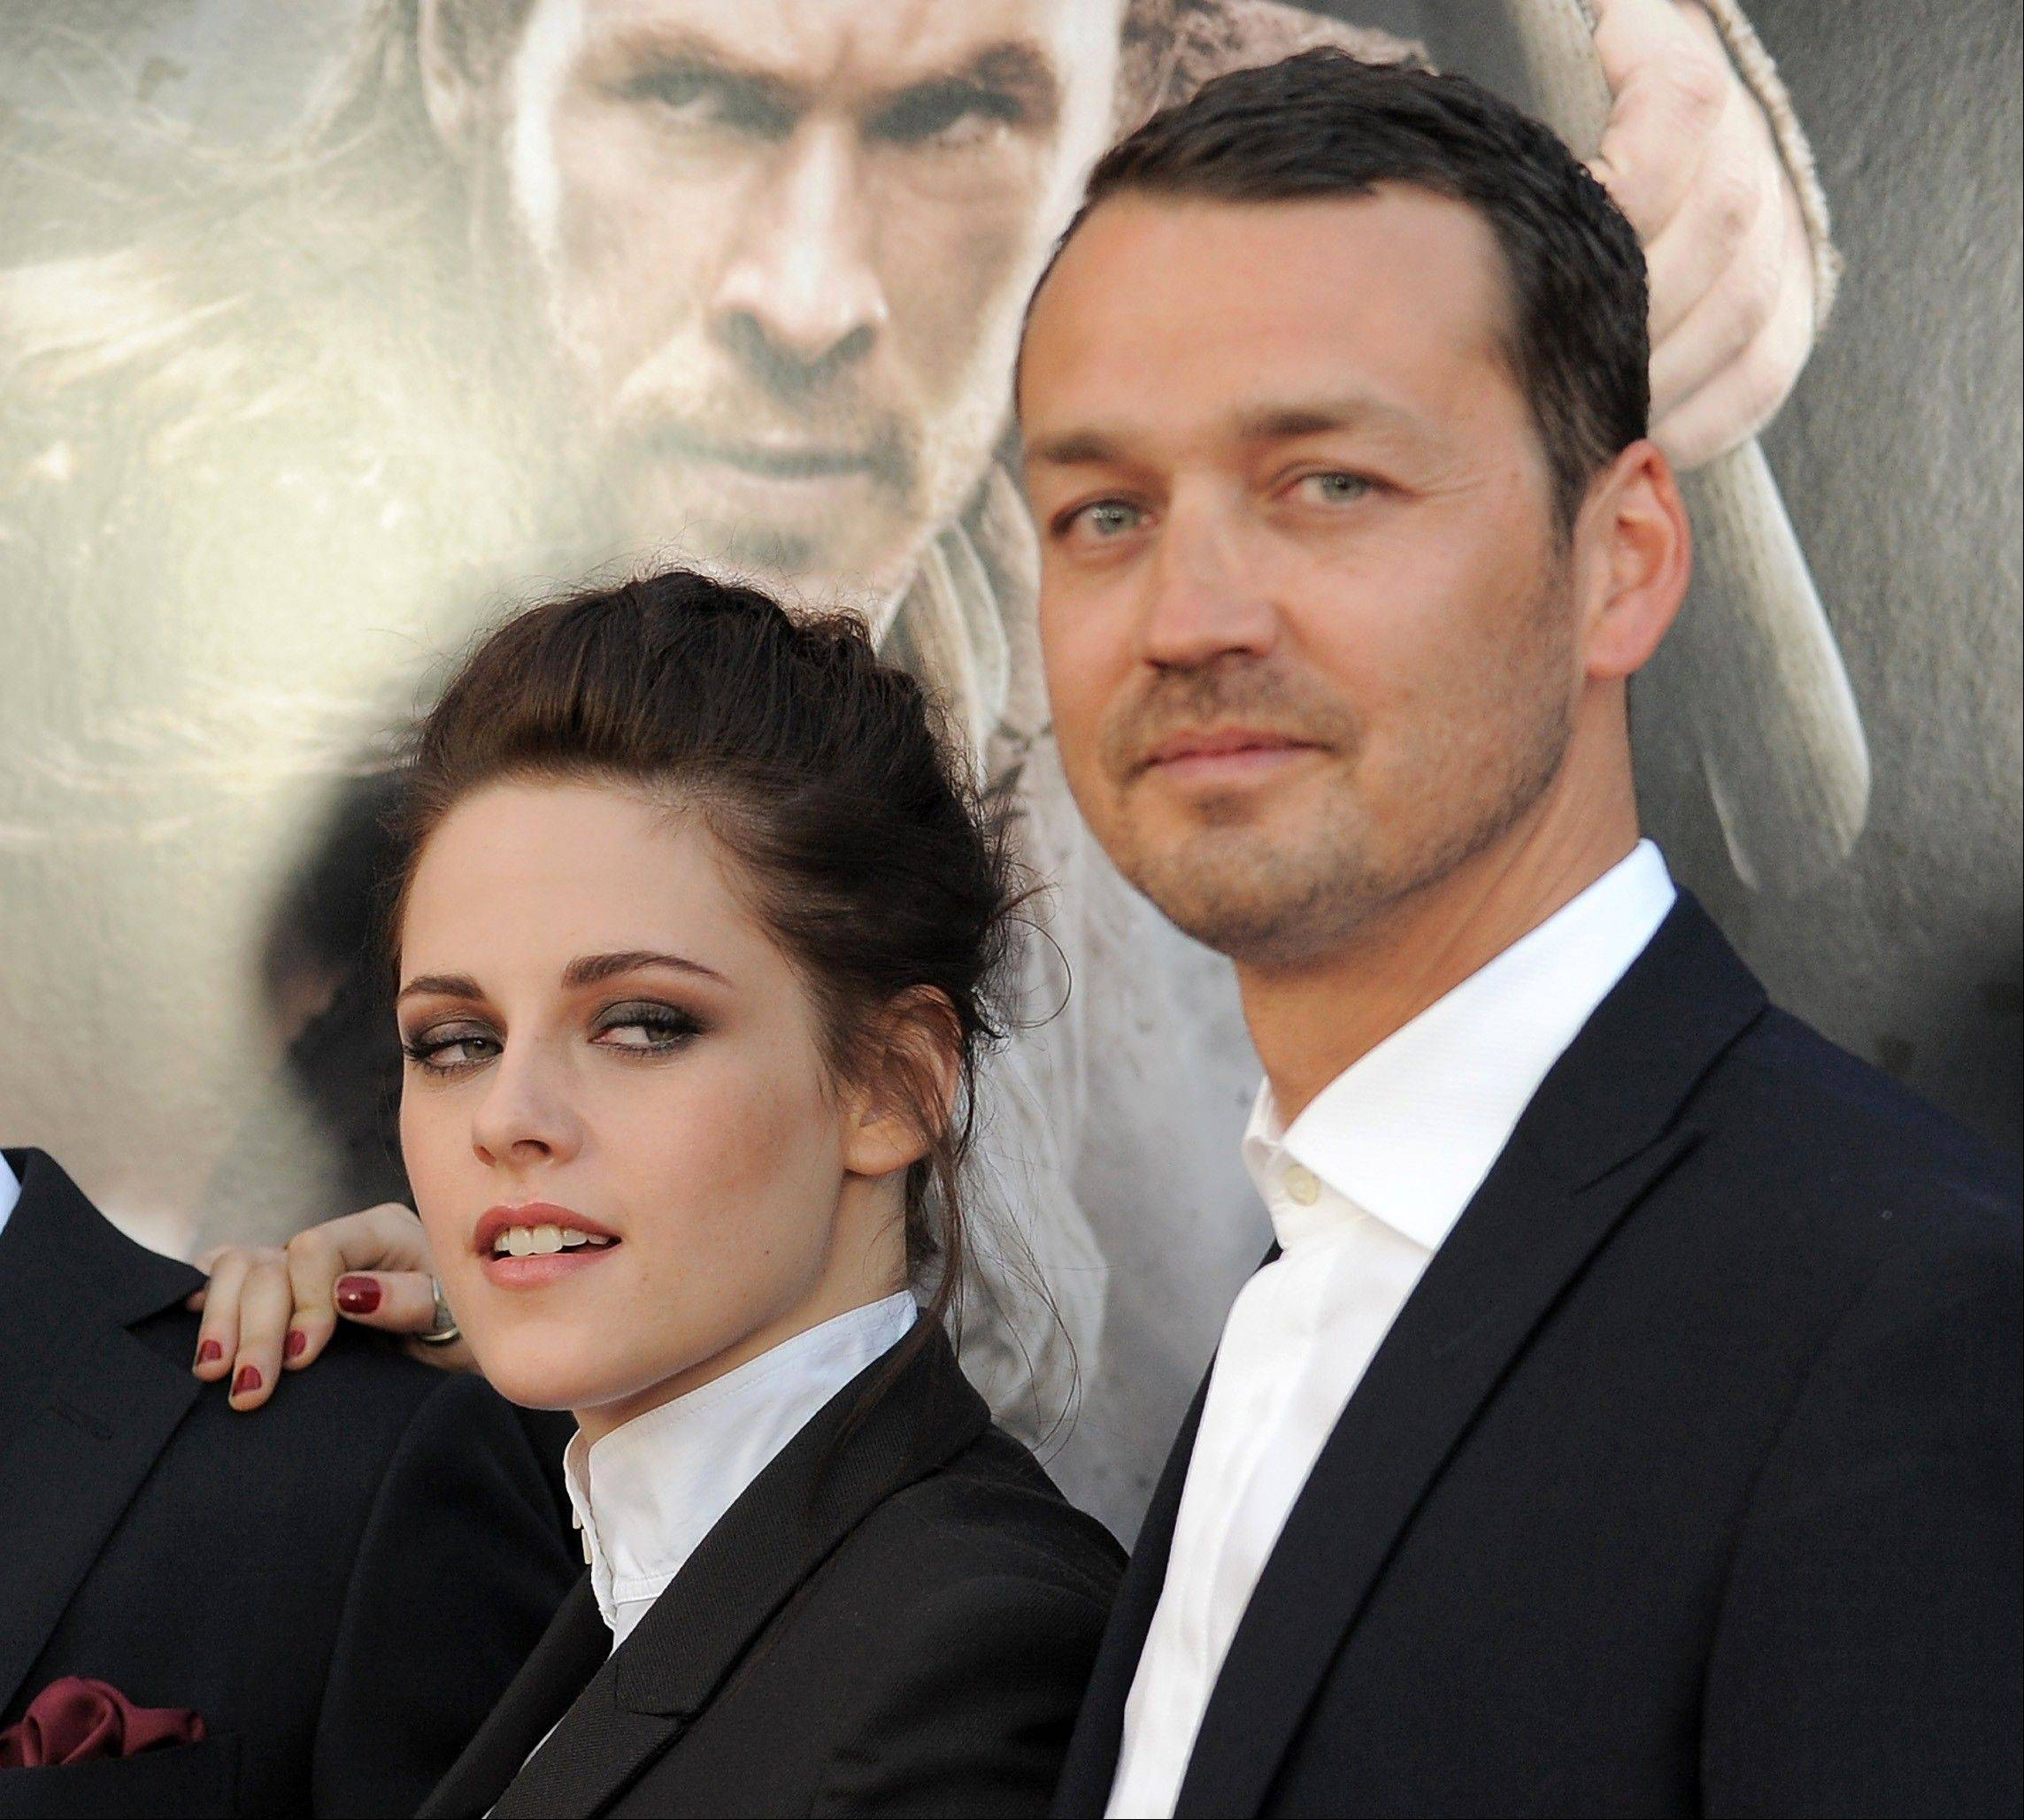 "FILE - This May 29, 2012 file photo shows actress Kristen Stewart and director Rupert Sanders attending the ""Snow White and the Huntsman"" screening in Los Angeles. Stewart and director Rupert Sanders are apologizing publicly to their loved ones following reports of infidelity. The 22-year-old actress and the 41-year-old filmmaker issued separate apologies to People magazine Wednesday, July 25, saying they regret the hurt they have caused. Stewart has been in a relationship for several years with her �Twilight� co-star Robert Pattinson. Sanders is married and has two children. (Photo by Jordan Strauss/Invision/AP)"